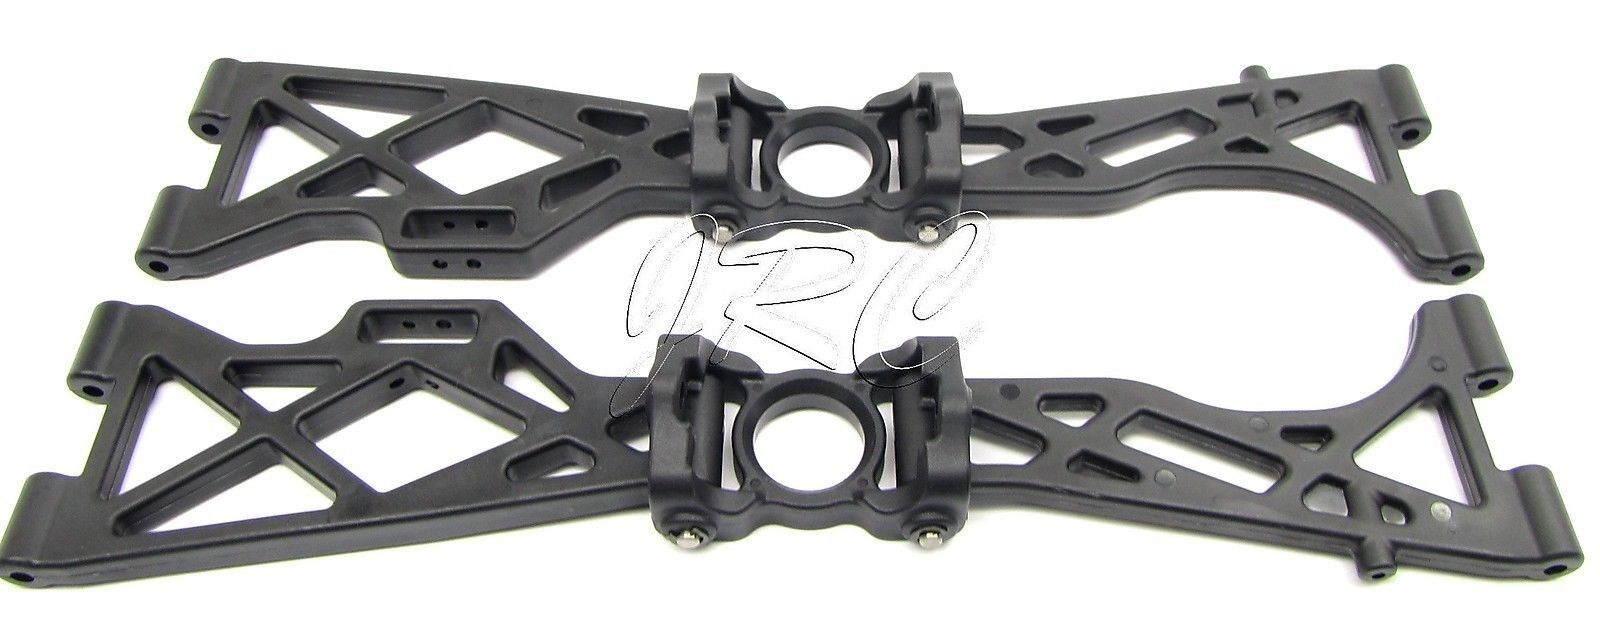 electric losi xxl 2 front a arms hubs carrier pivot pins. Black Bedroom Furniture Sets. Home Design Ideas